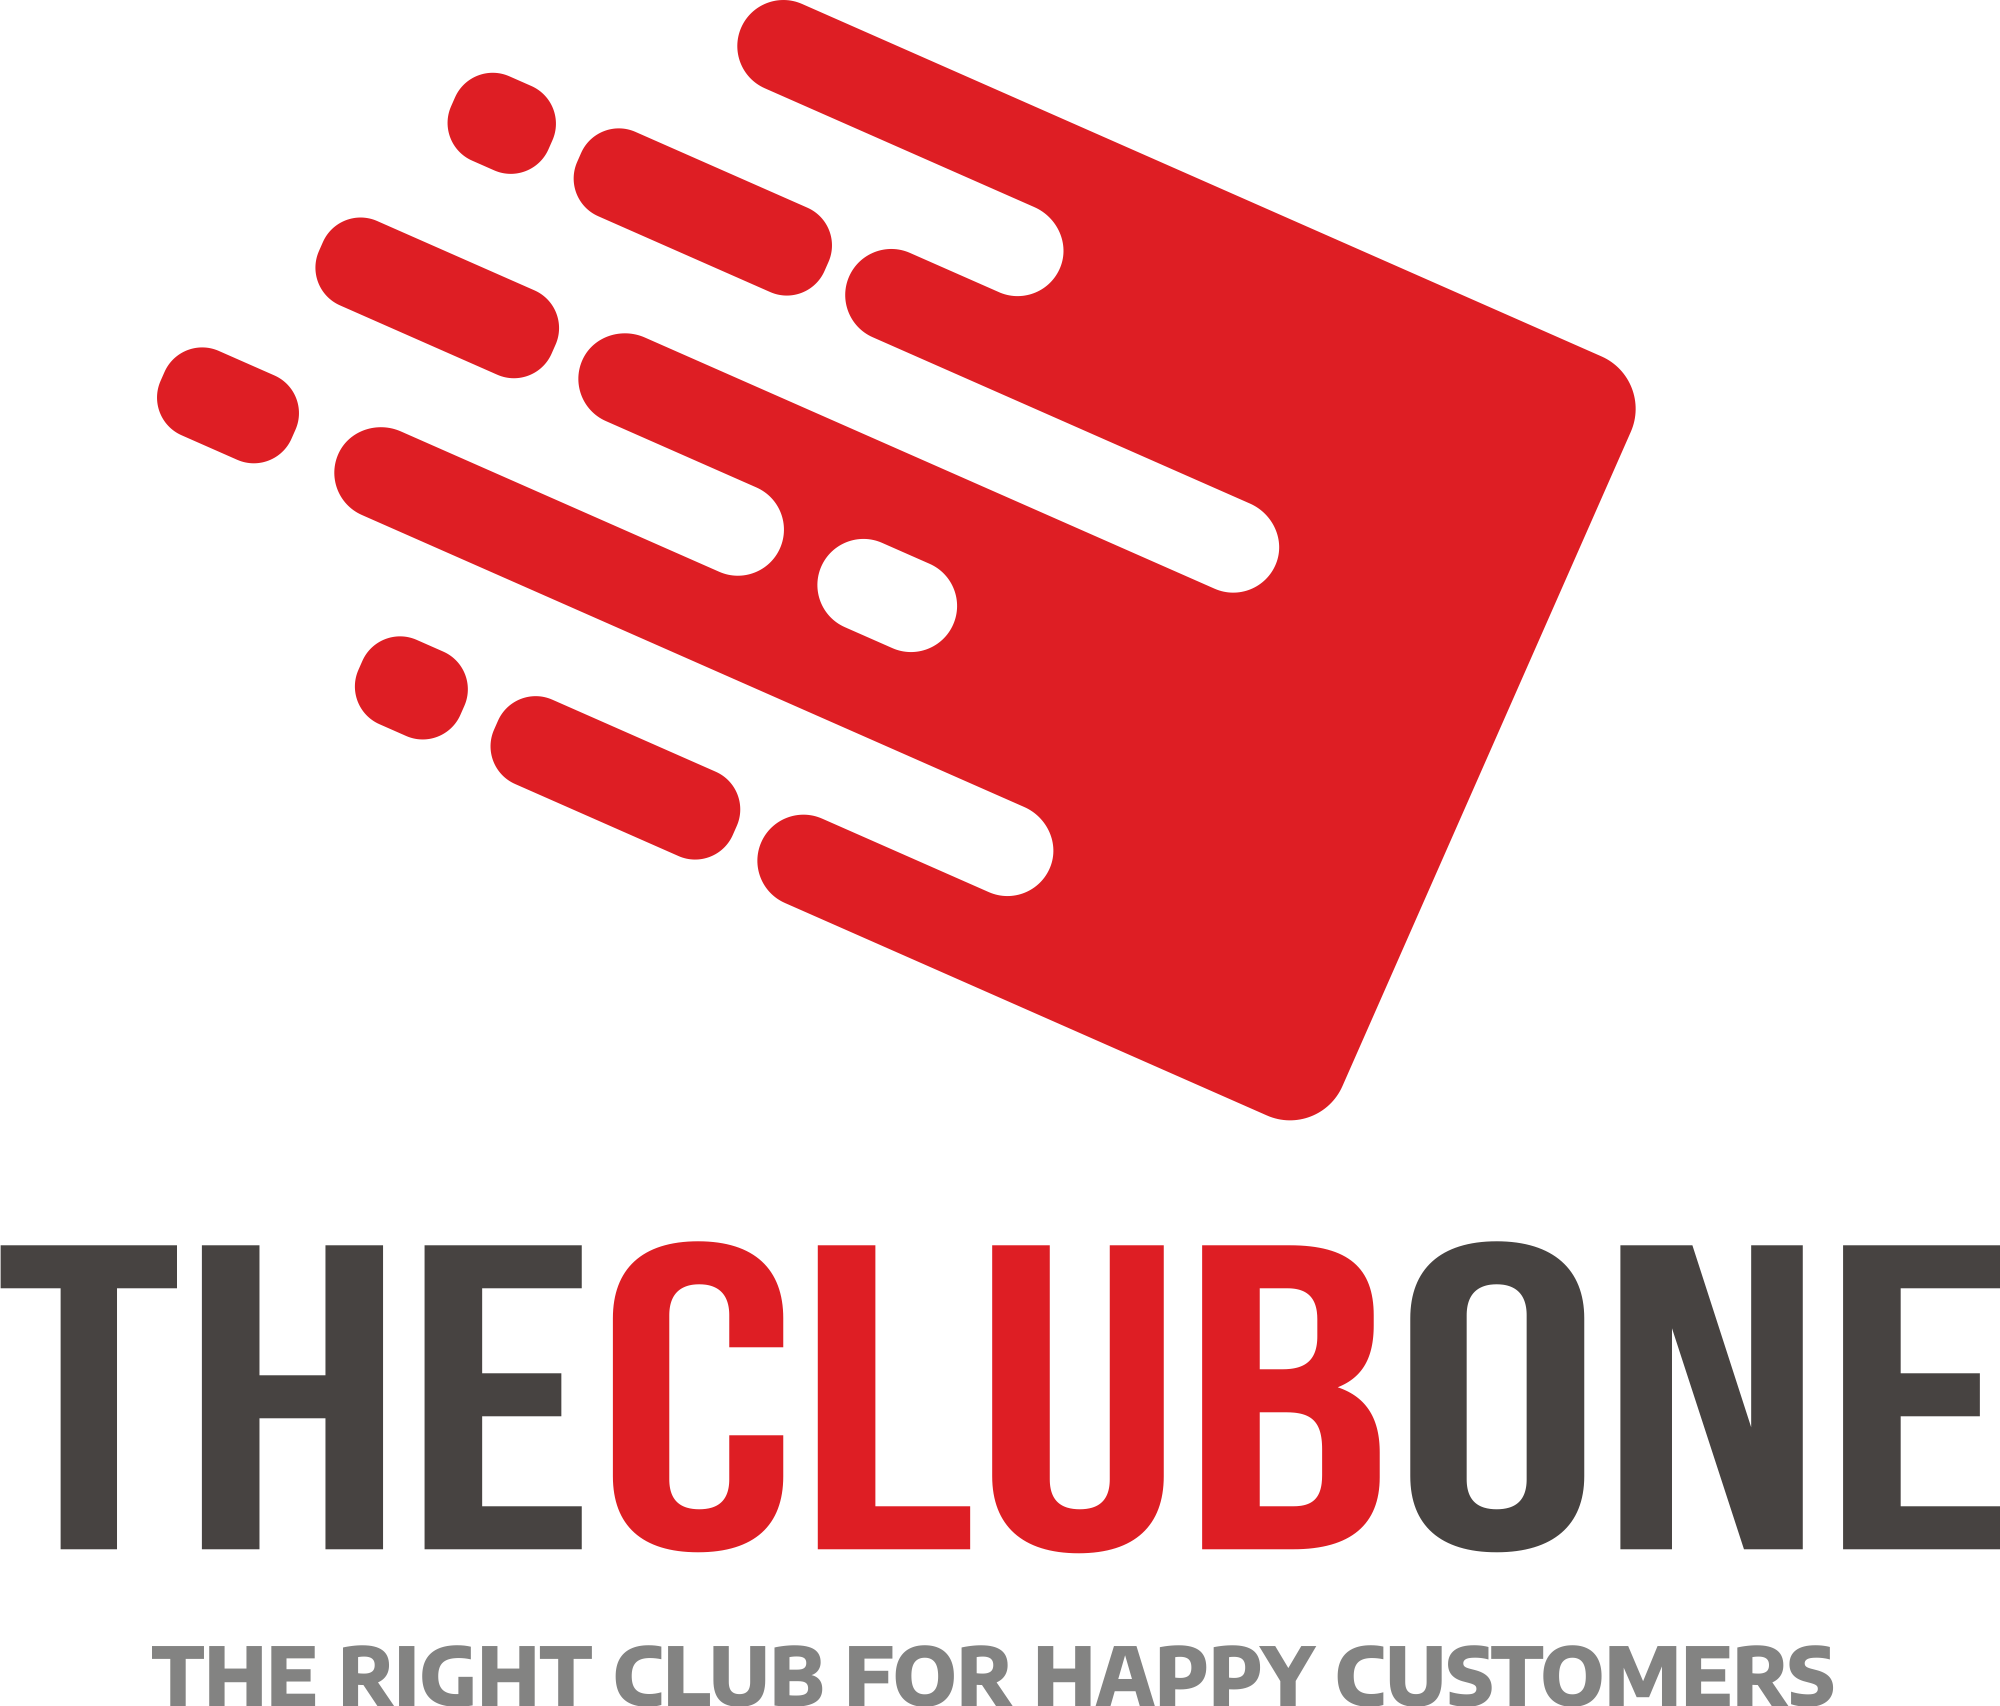 The Club One